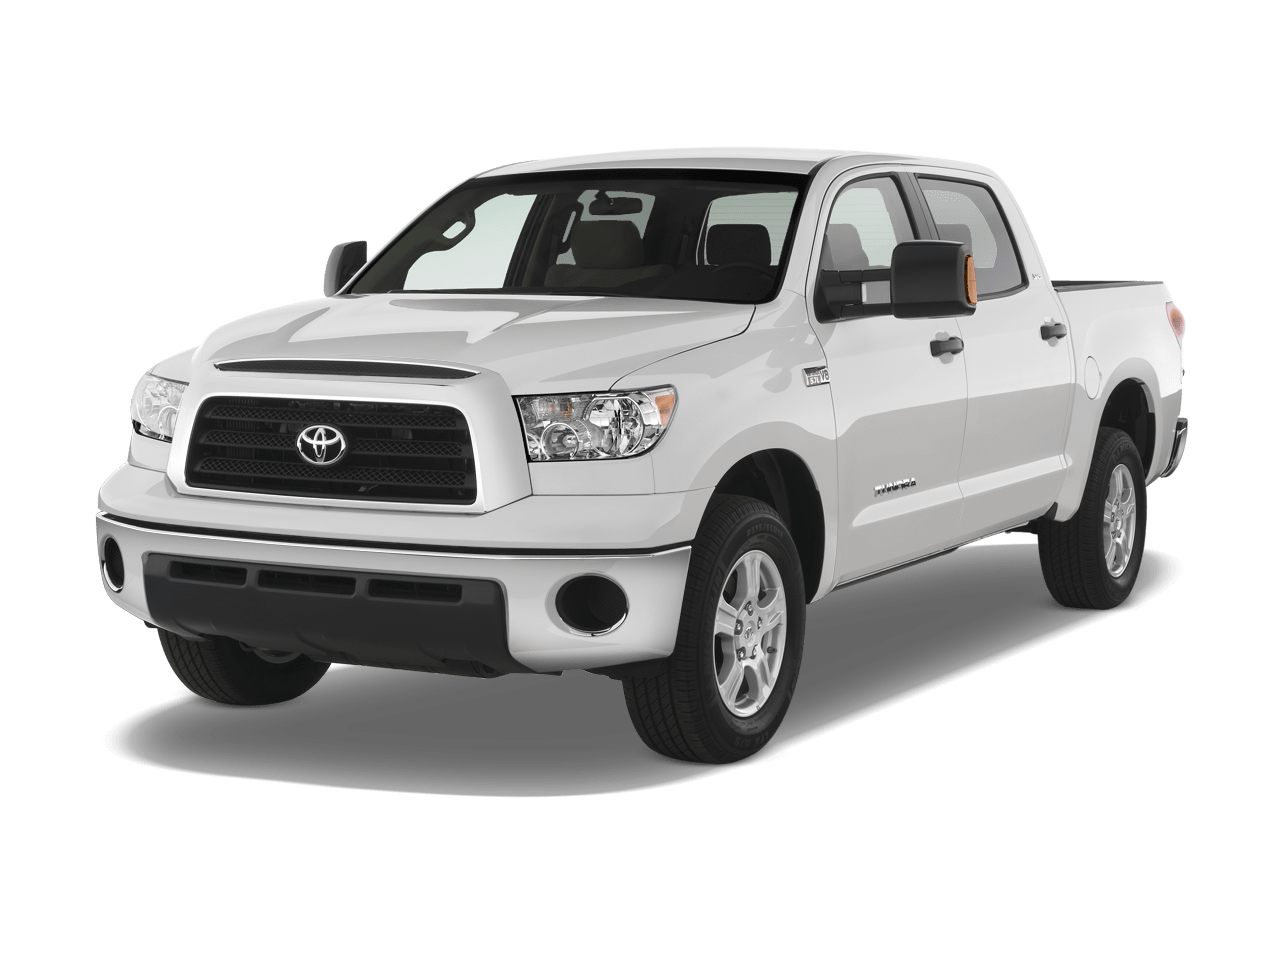 medium resolution of 2007 toyota tundra reviews research tundra prices specs motortrend 2007 toyota tundra receiver wiring